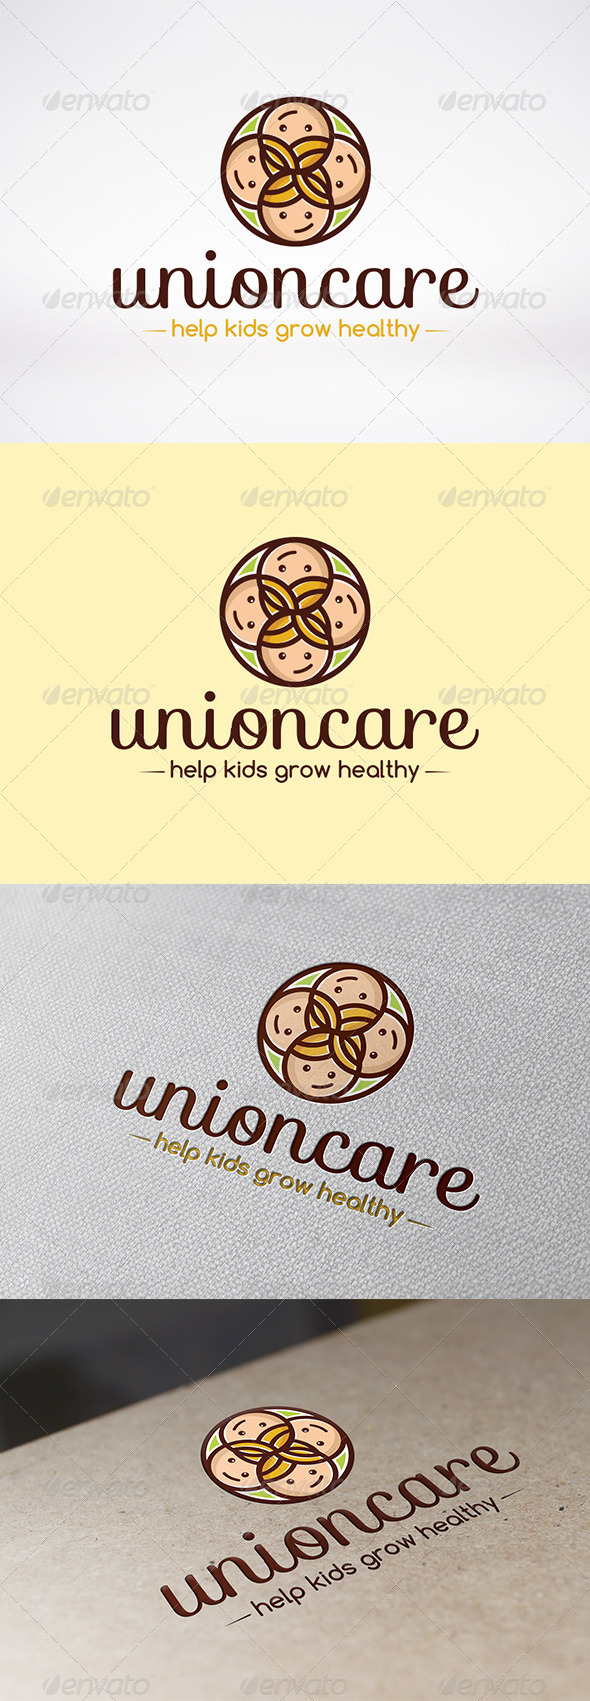 Unity Care Logo Template - Humans Logo Templates